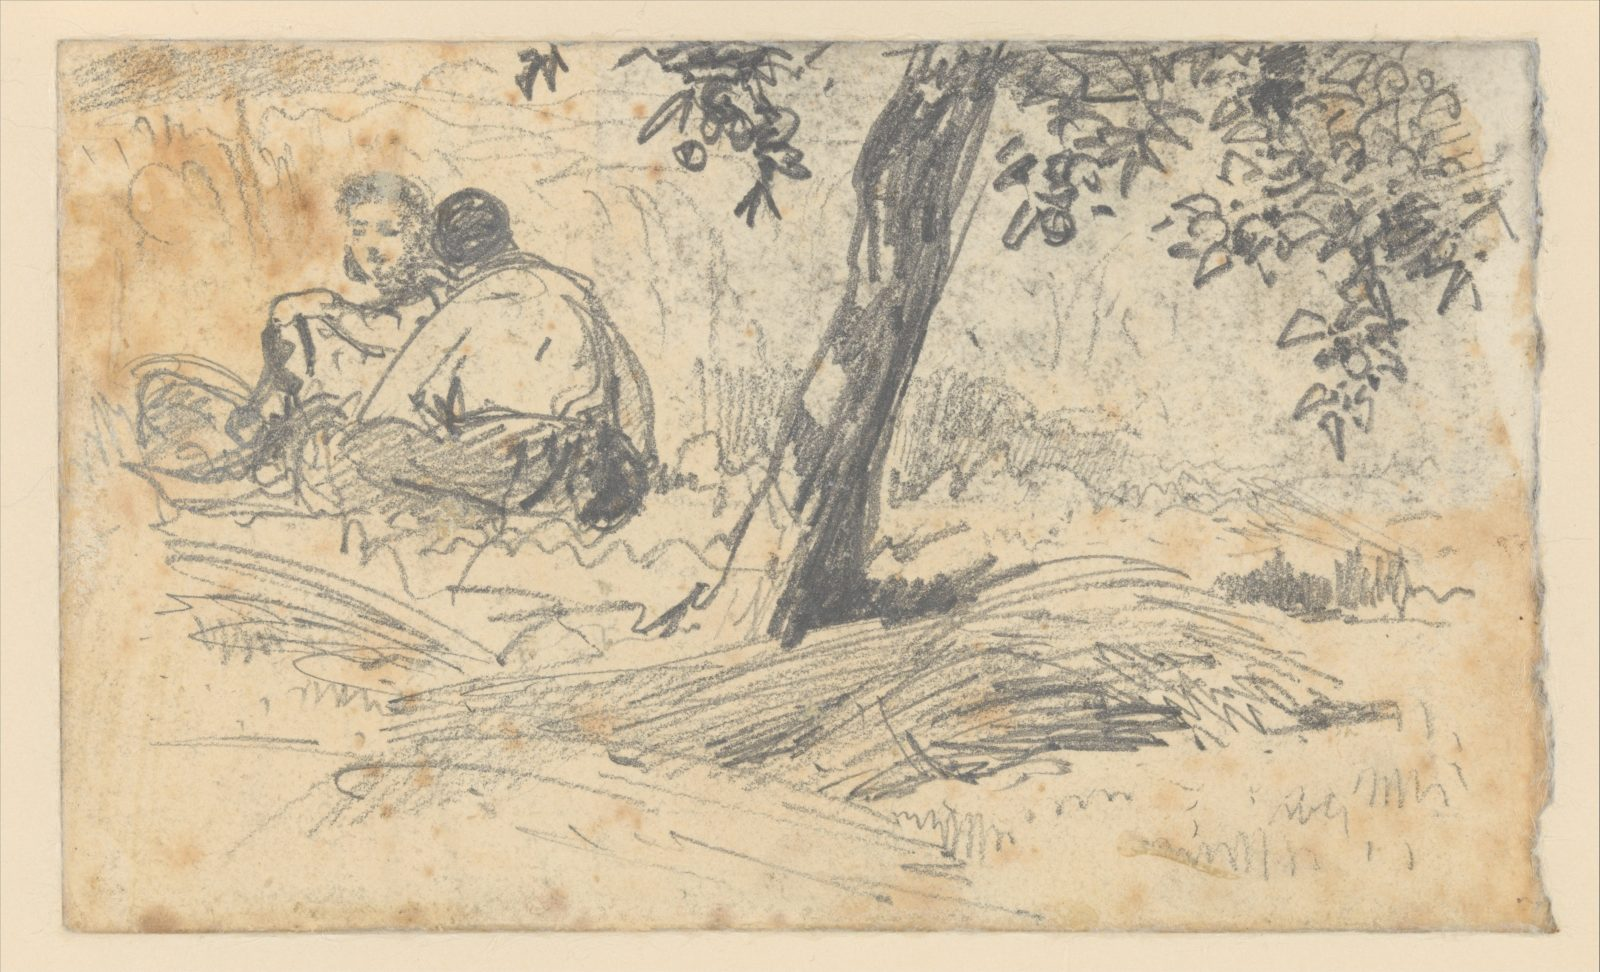 Boy and Girl Seated by Tree (from Scrapbook)